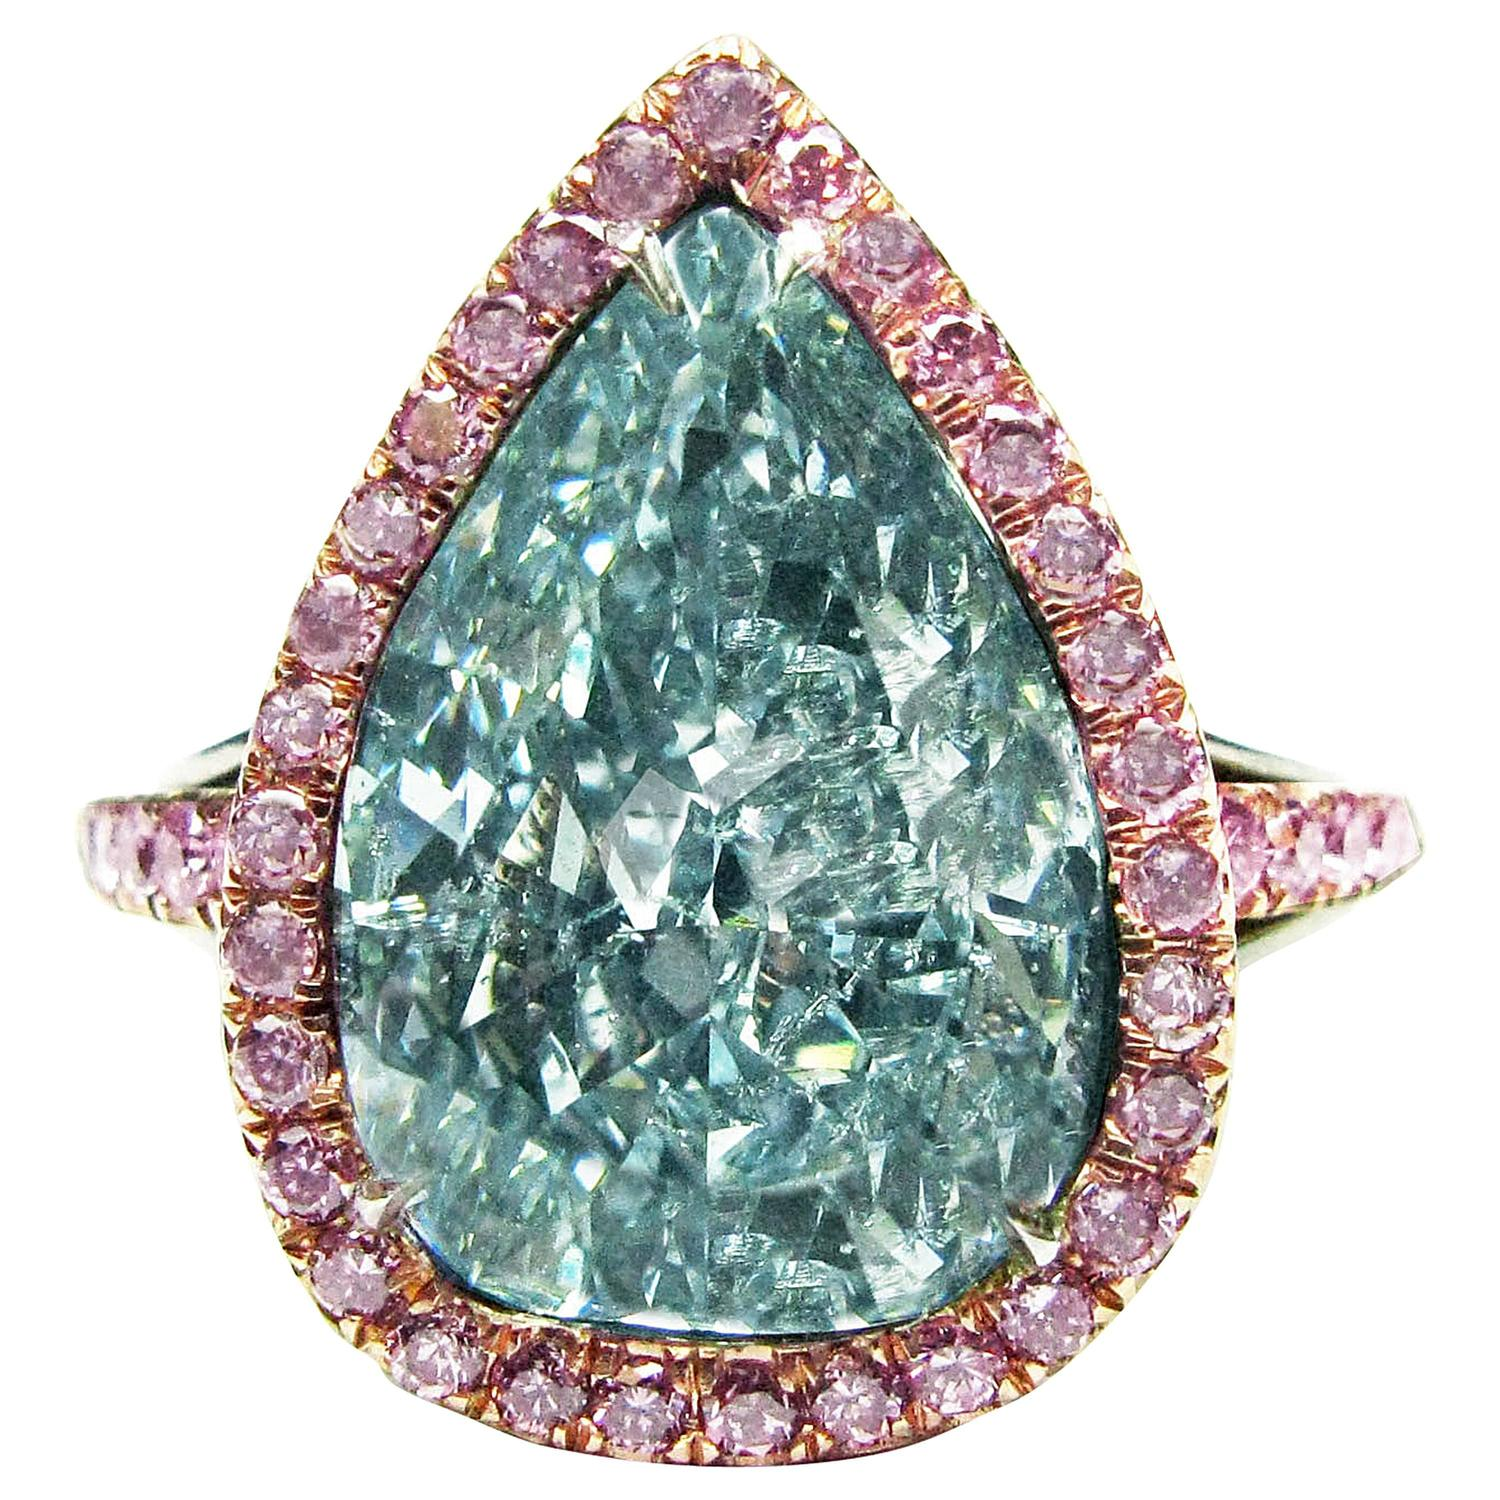 Antique Blue Diamond Jewelry & Watches 51 For Sale at 1stdibs